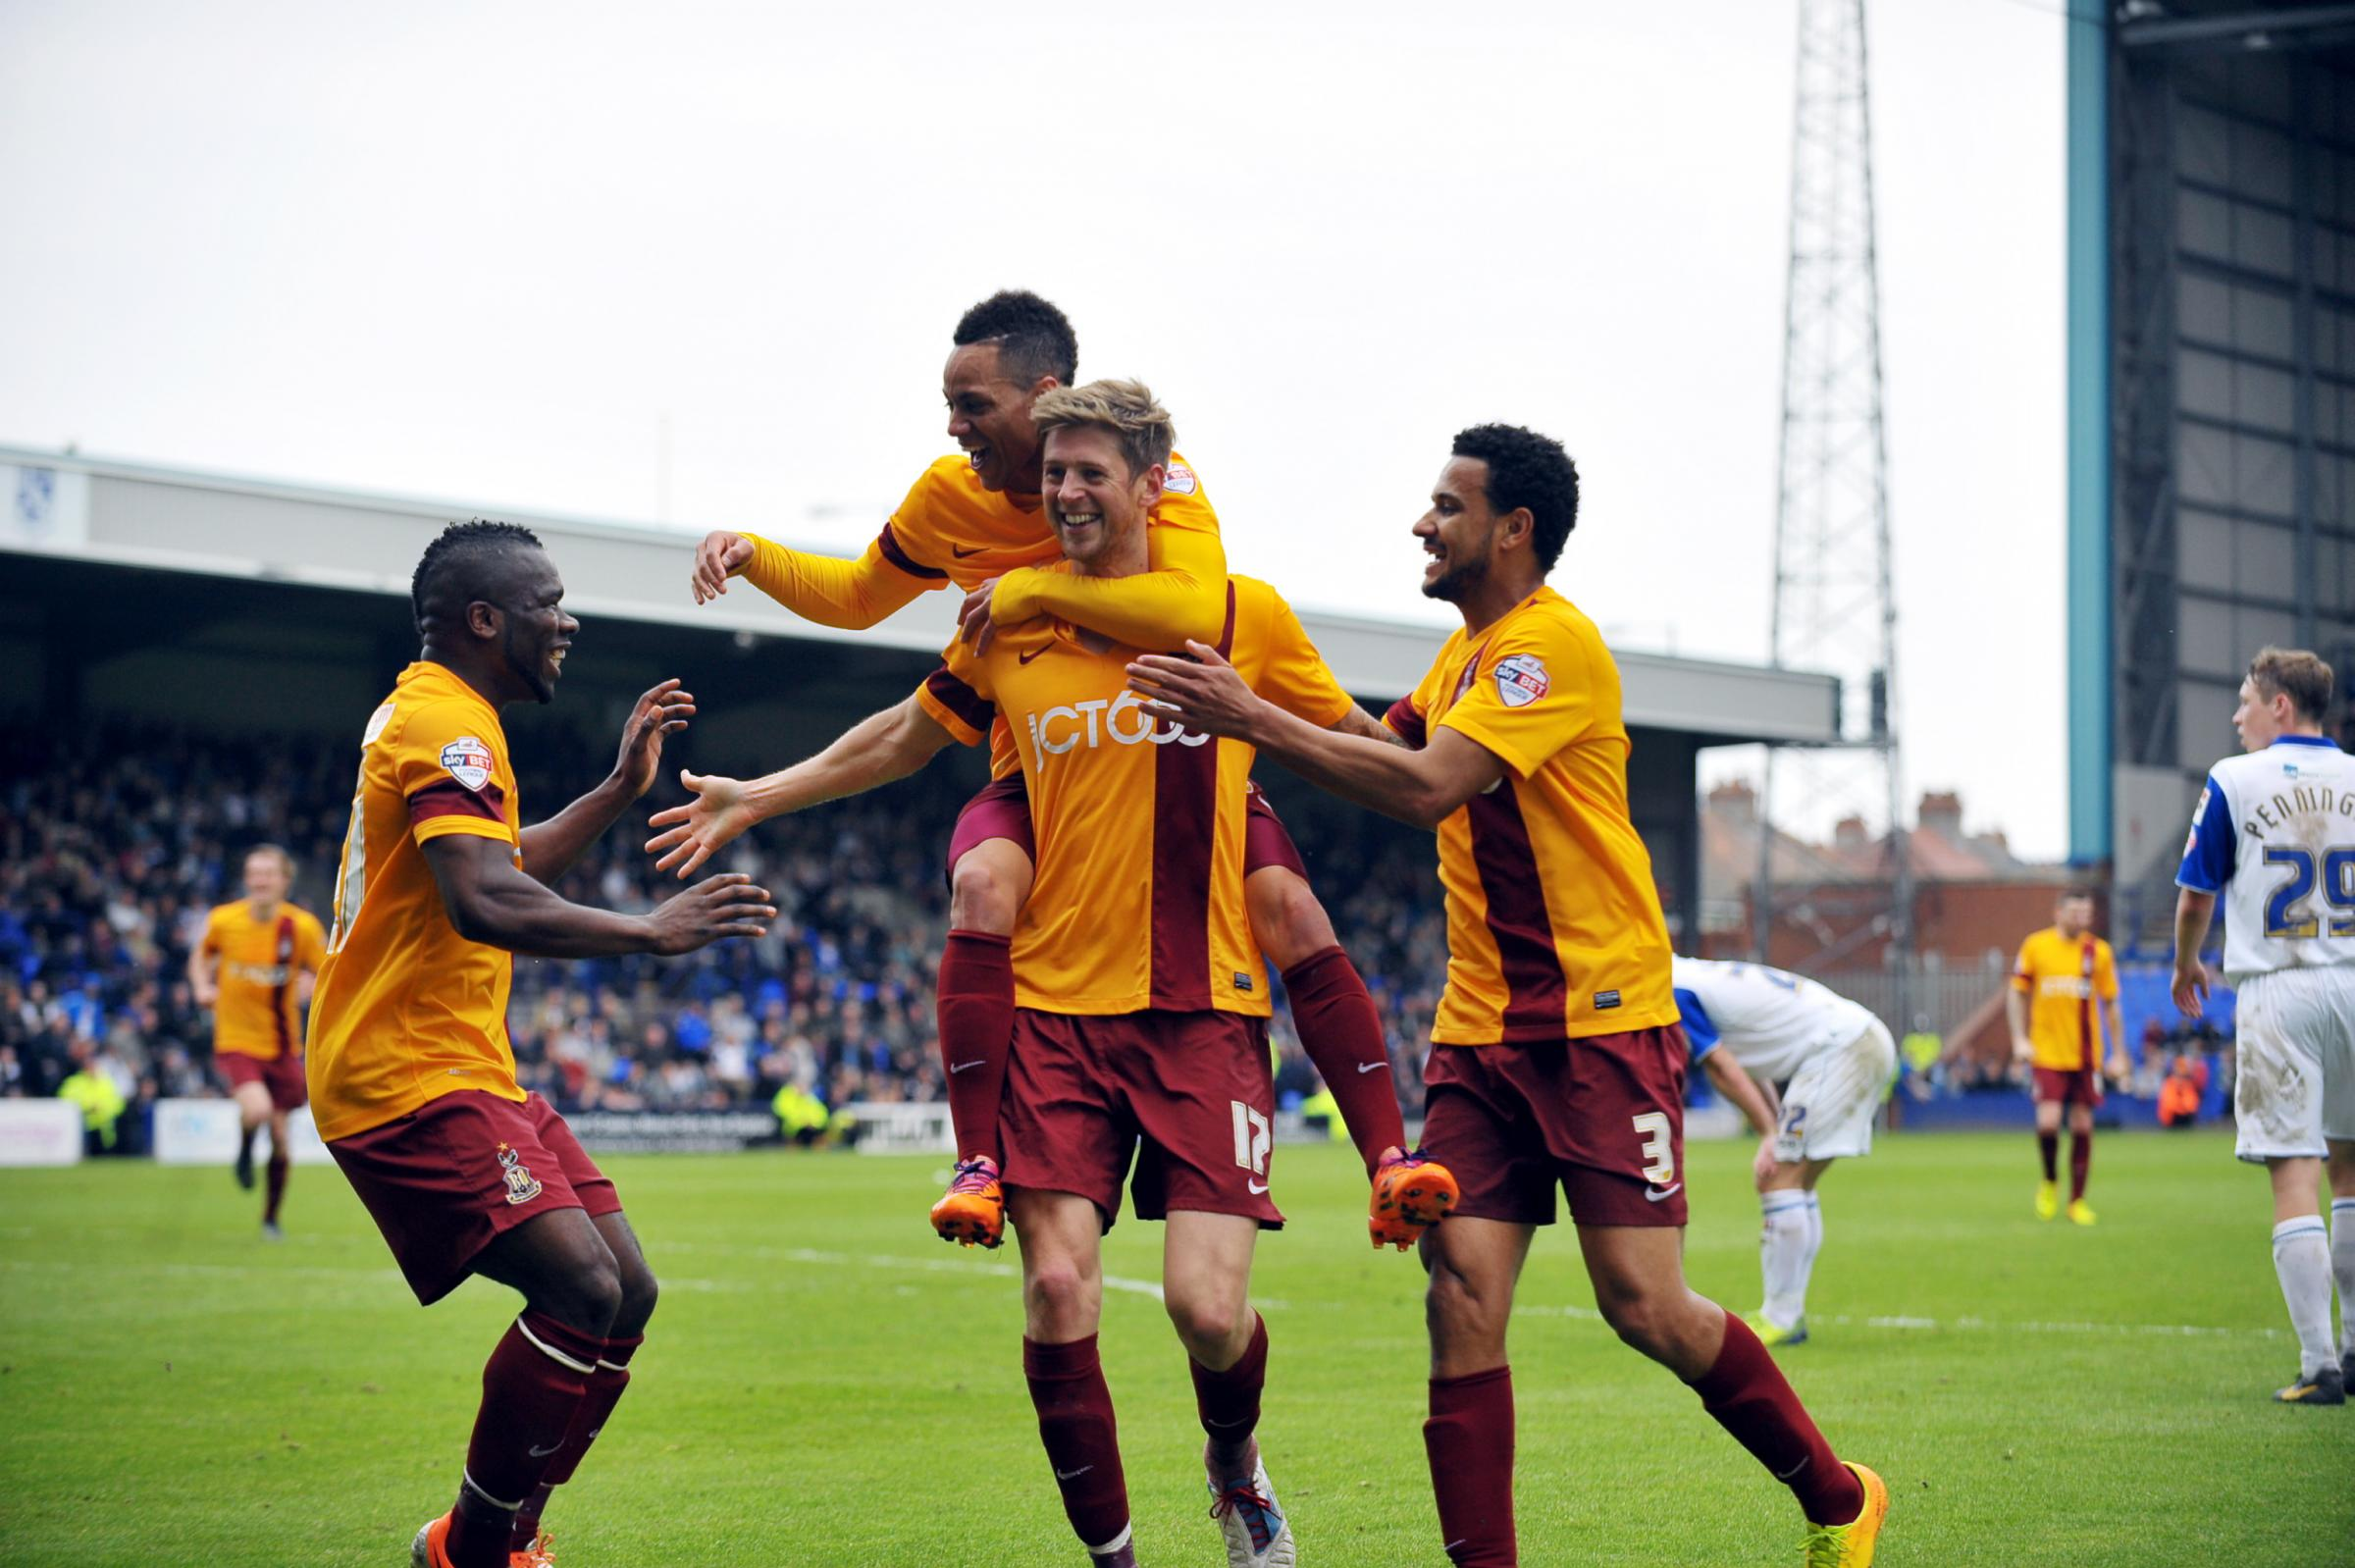 Agony for Tranmere and ecstasy for Bantams as curtain comes down on the season